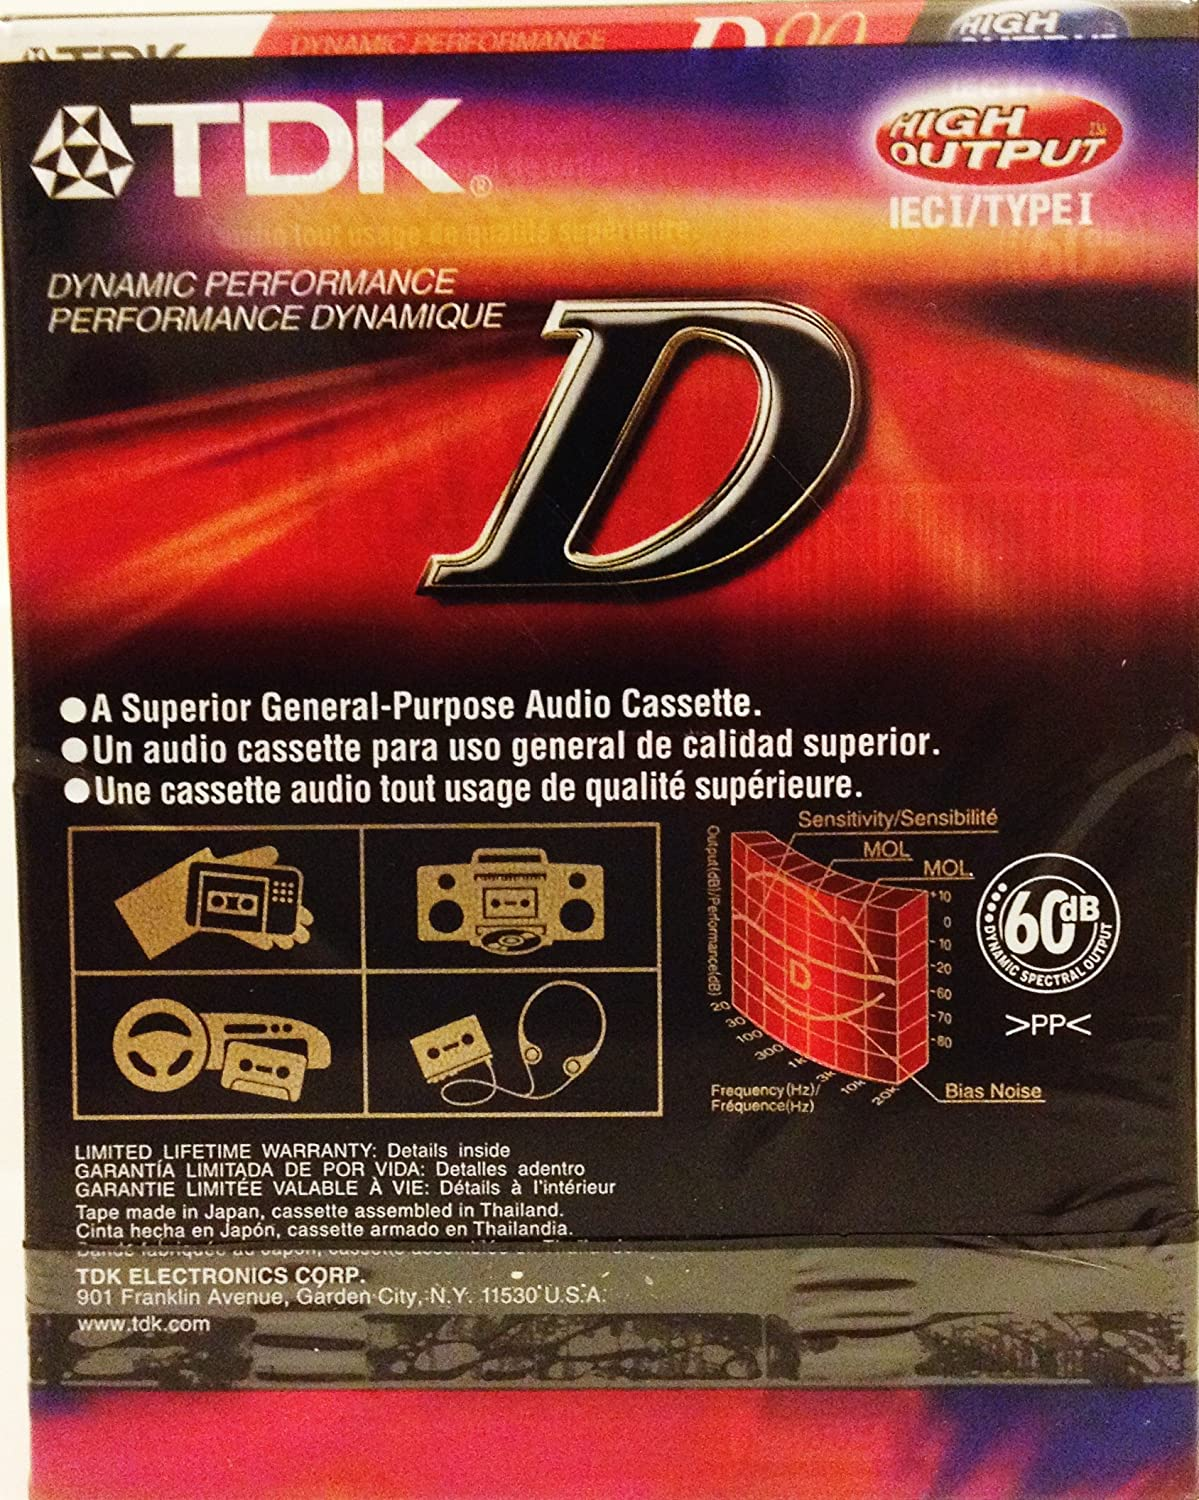 Amazon.com: TDK D90 High Output Dynamic Performance Audio Cassette (16 pack): Home Audio & Theater